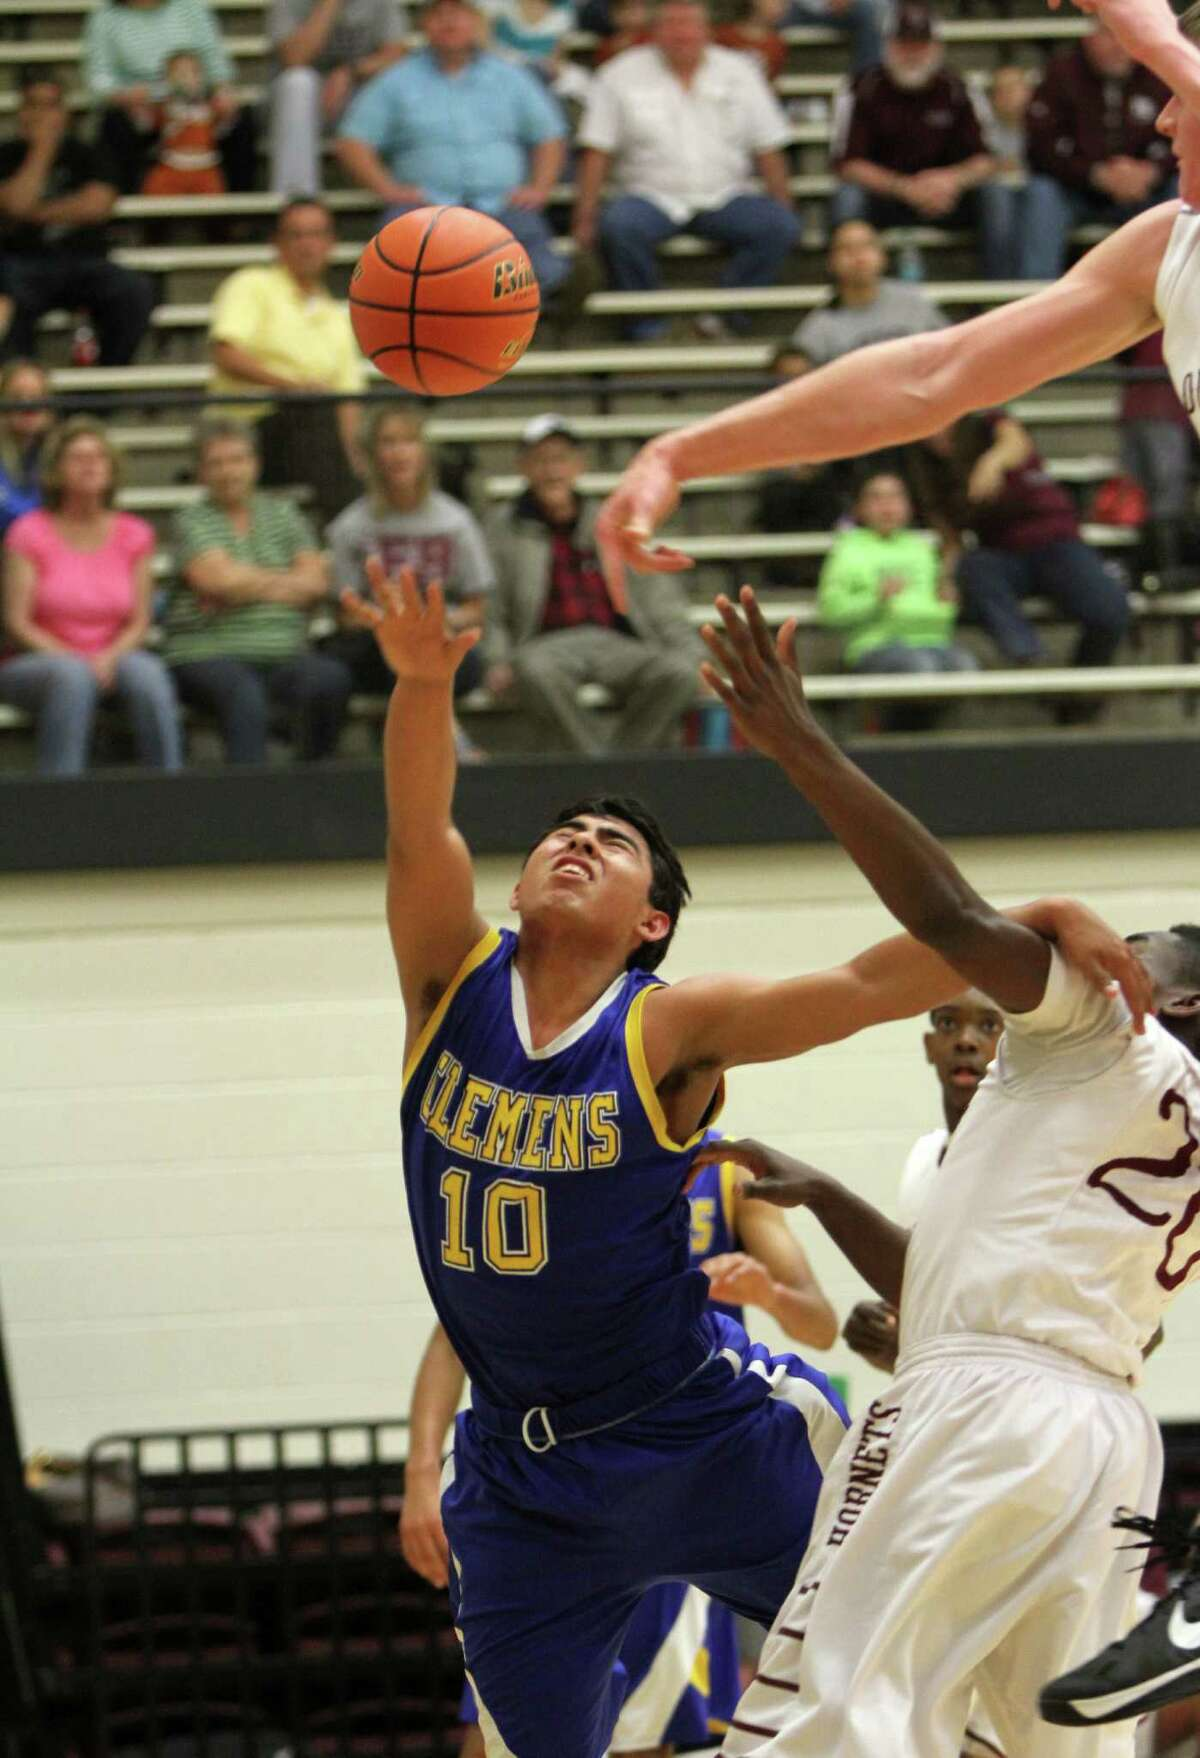 Clemens' Ernesto Castillo (10) is fouled during a win Friday over Corpus Christi Flour Bluff.